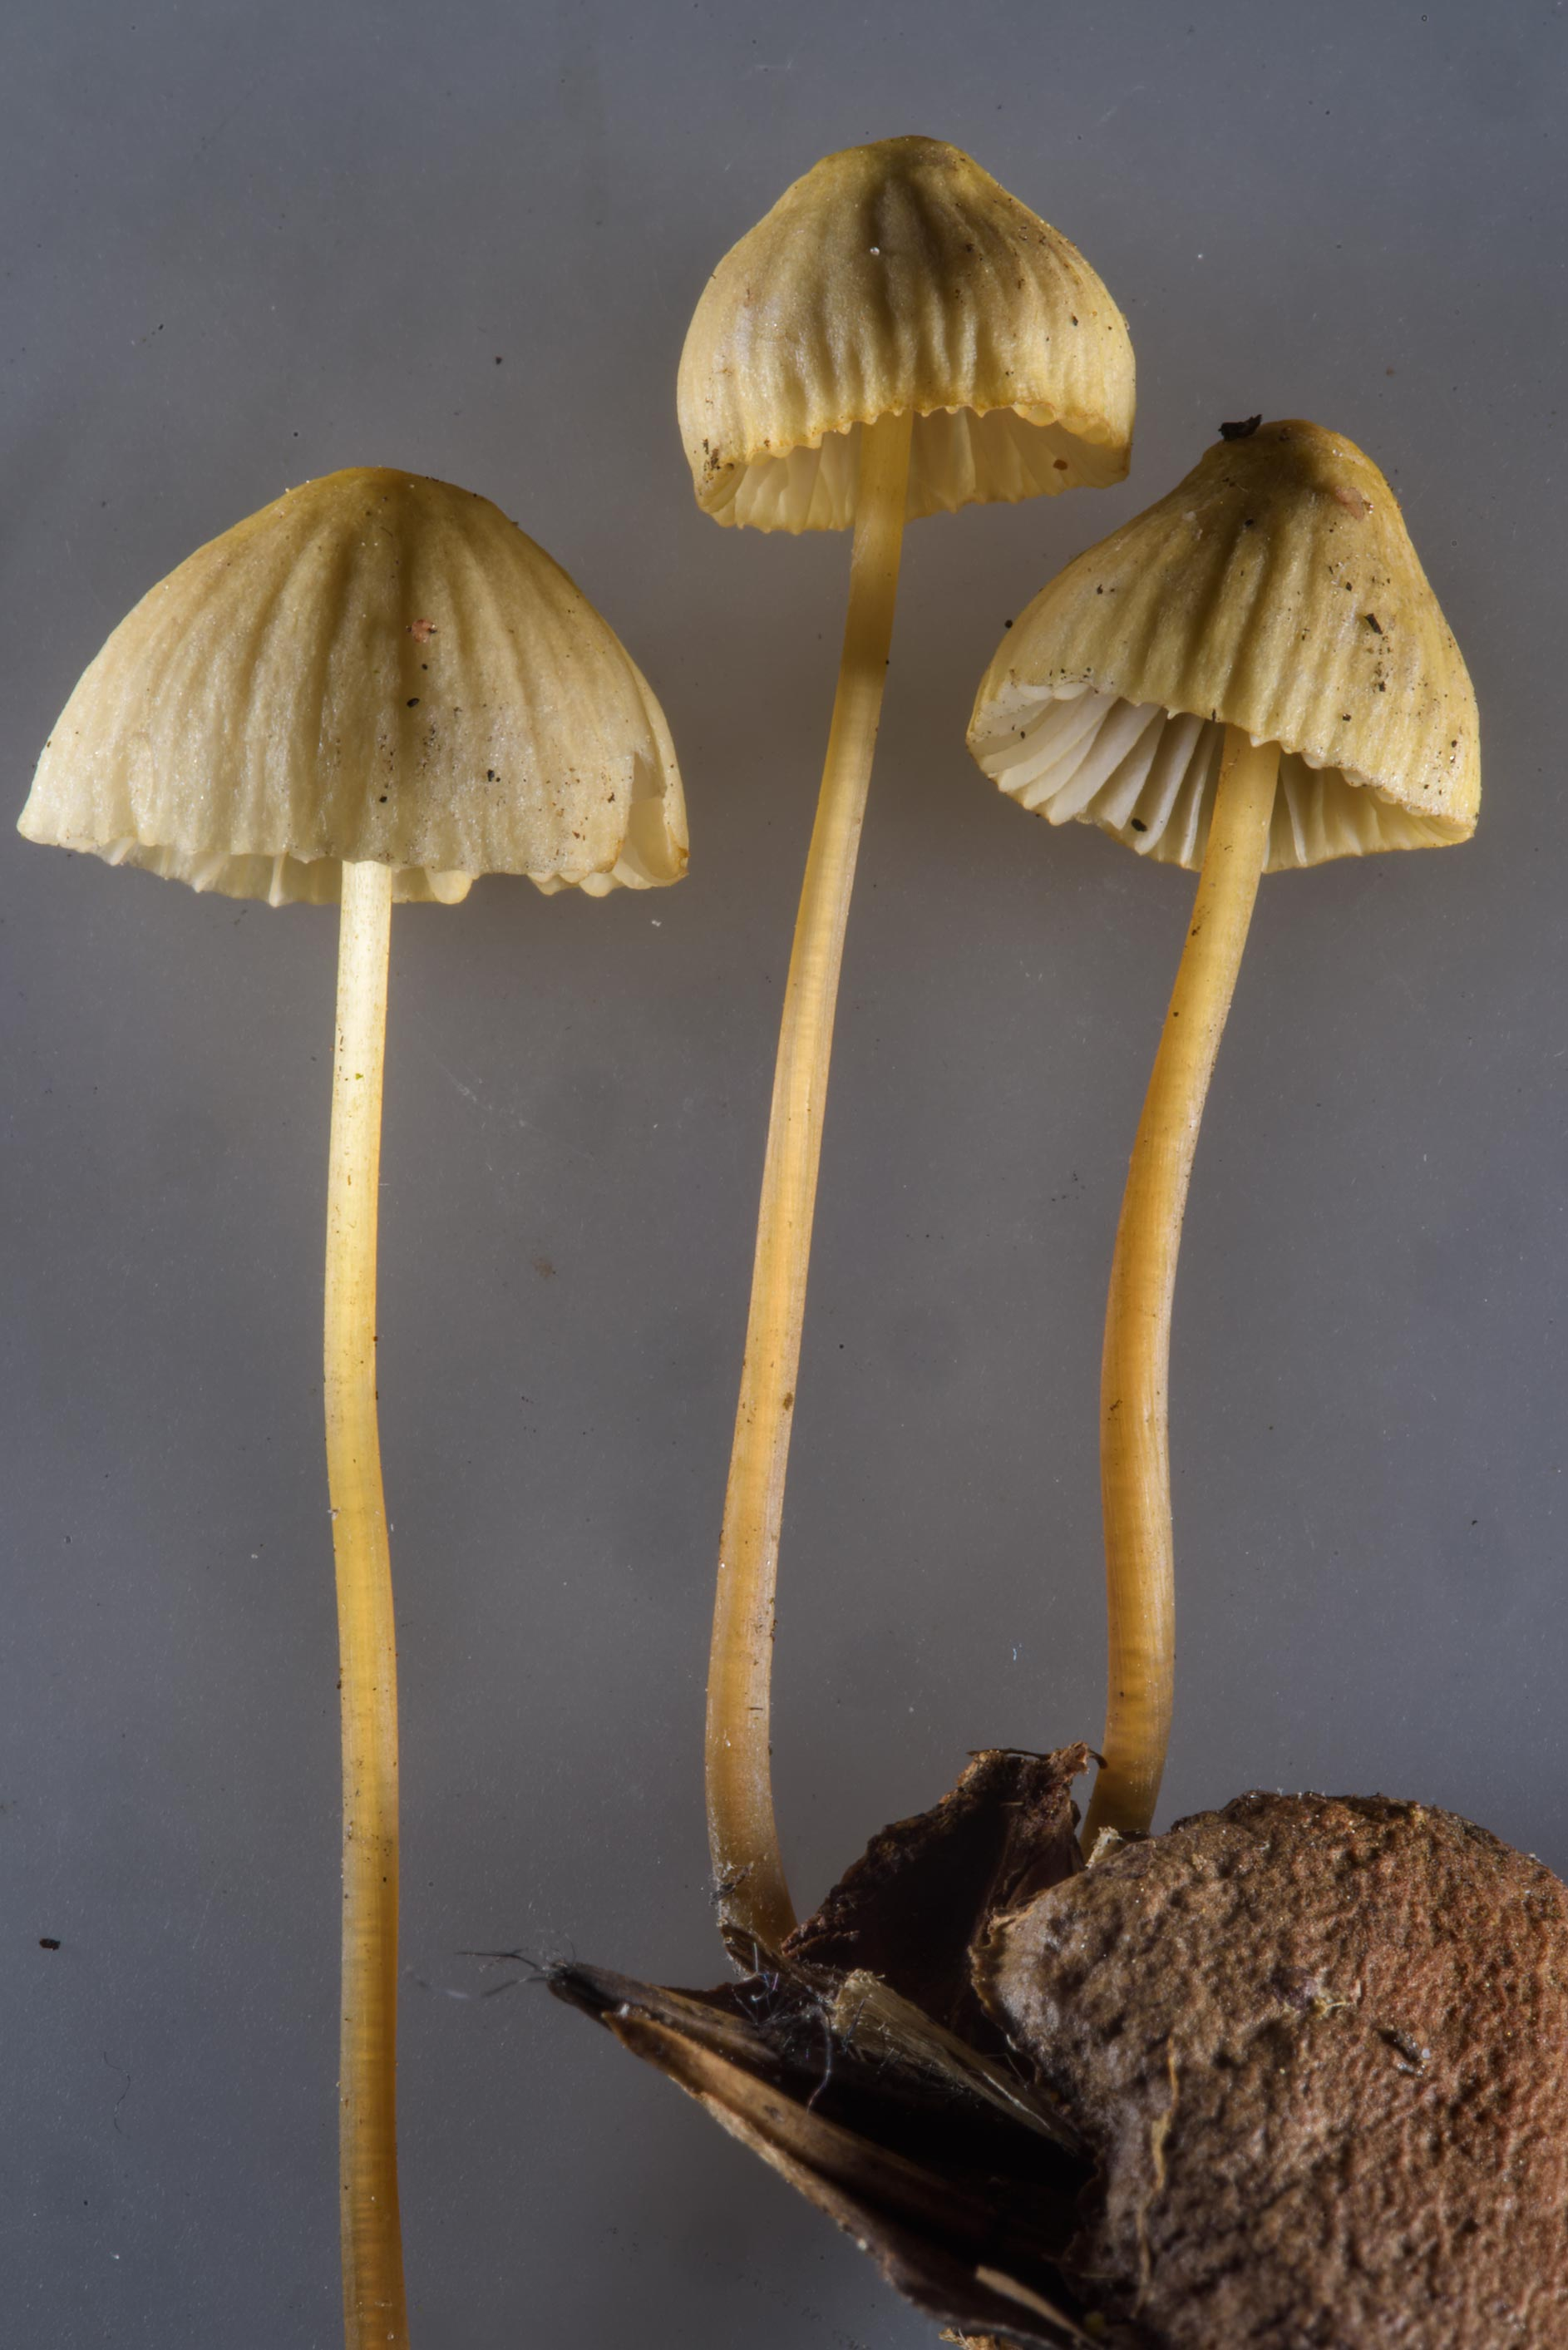 Bonnet mushrooms (Mycena) growing on wood chips...north from St.Petersburg. Russia